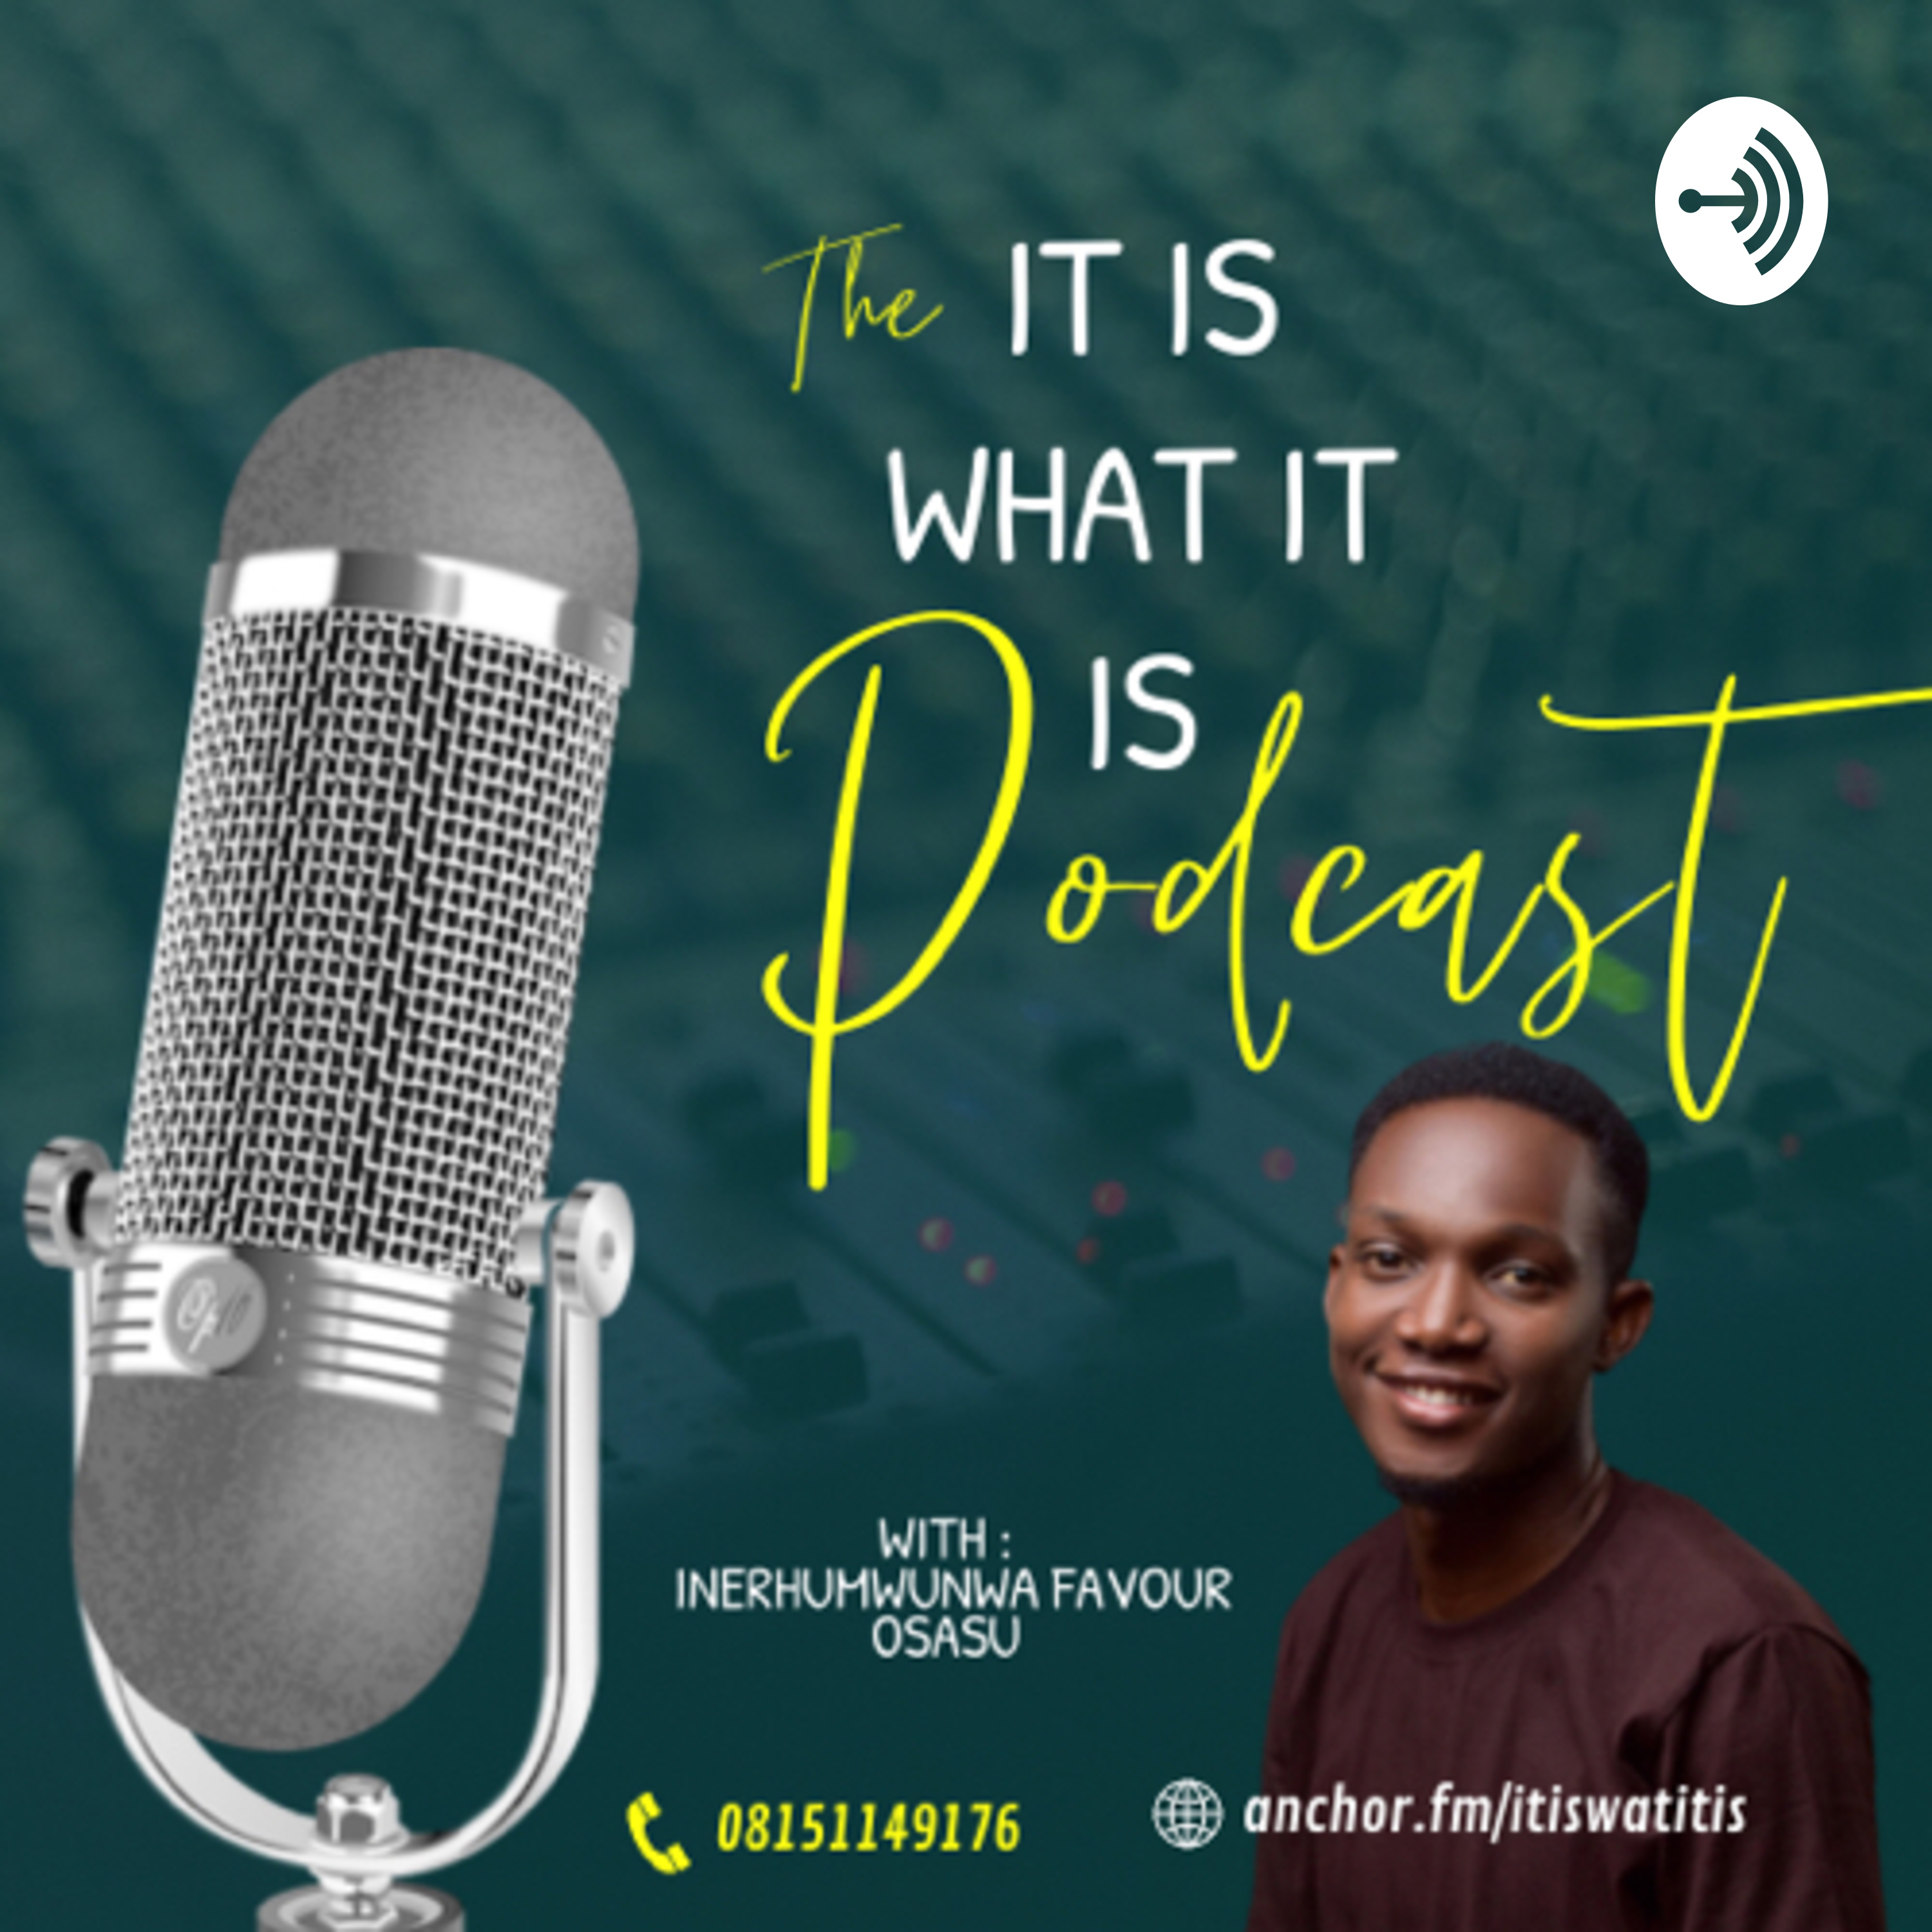 The It is what it is Podcast with Inerhumwunwa Favour Osasu